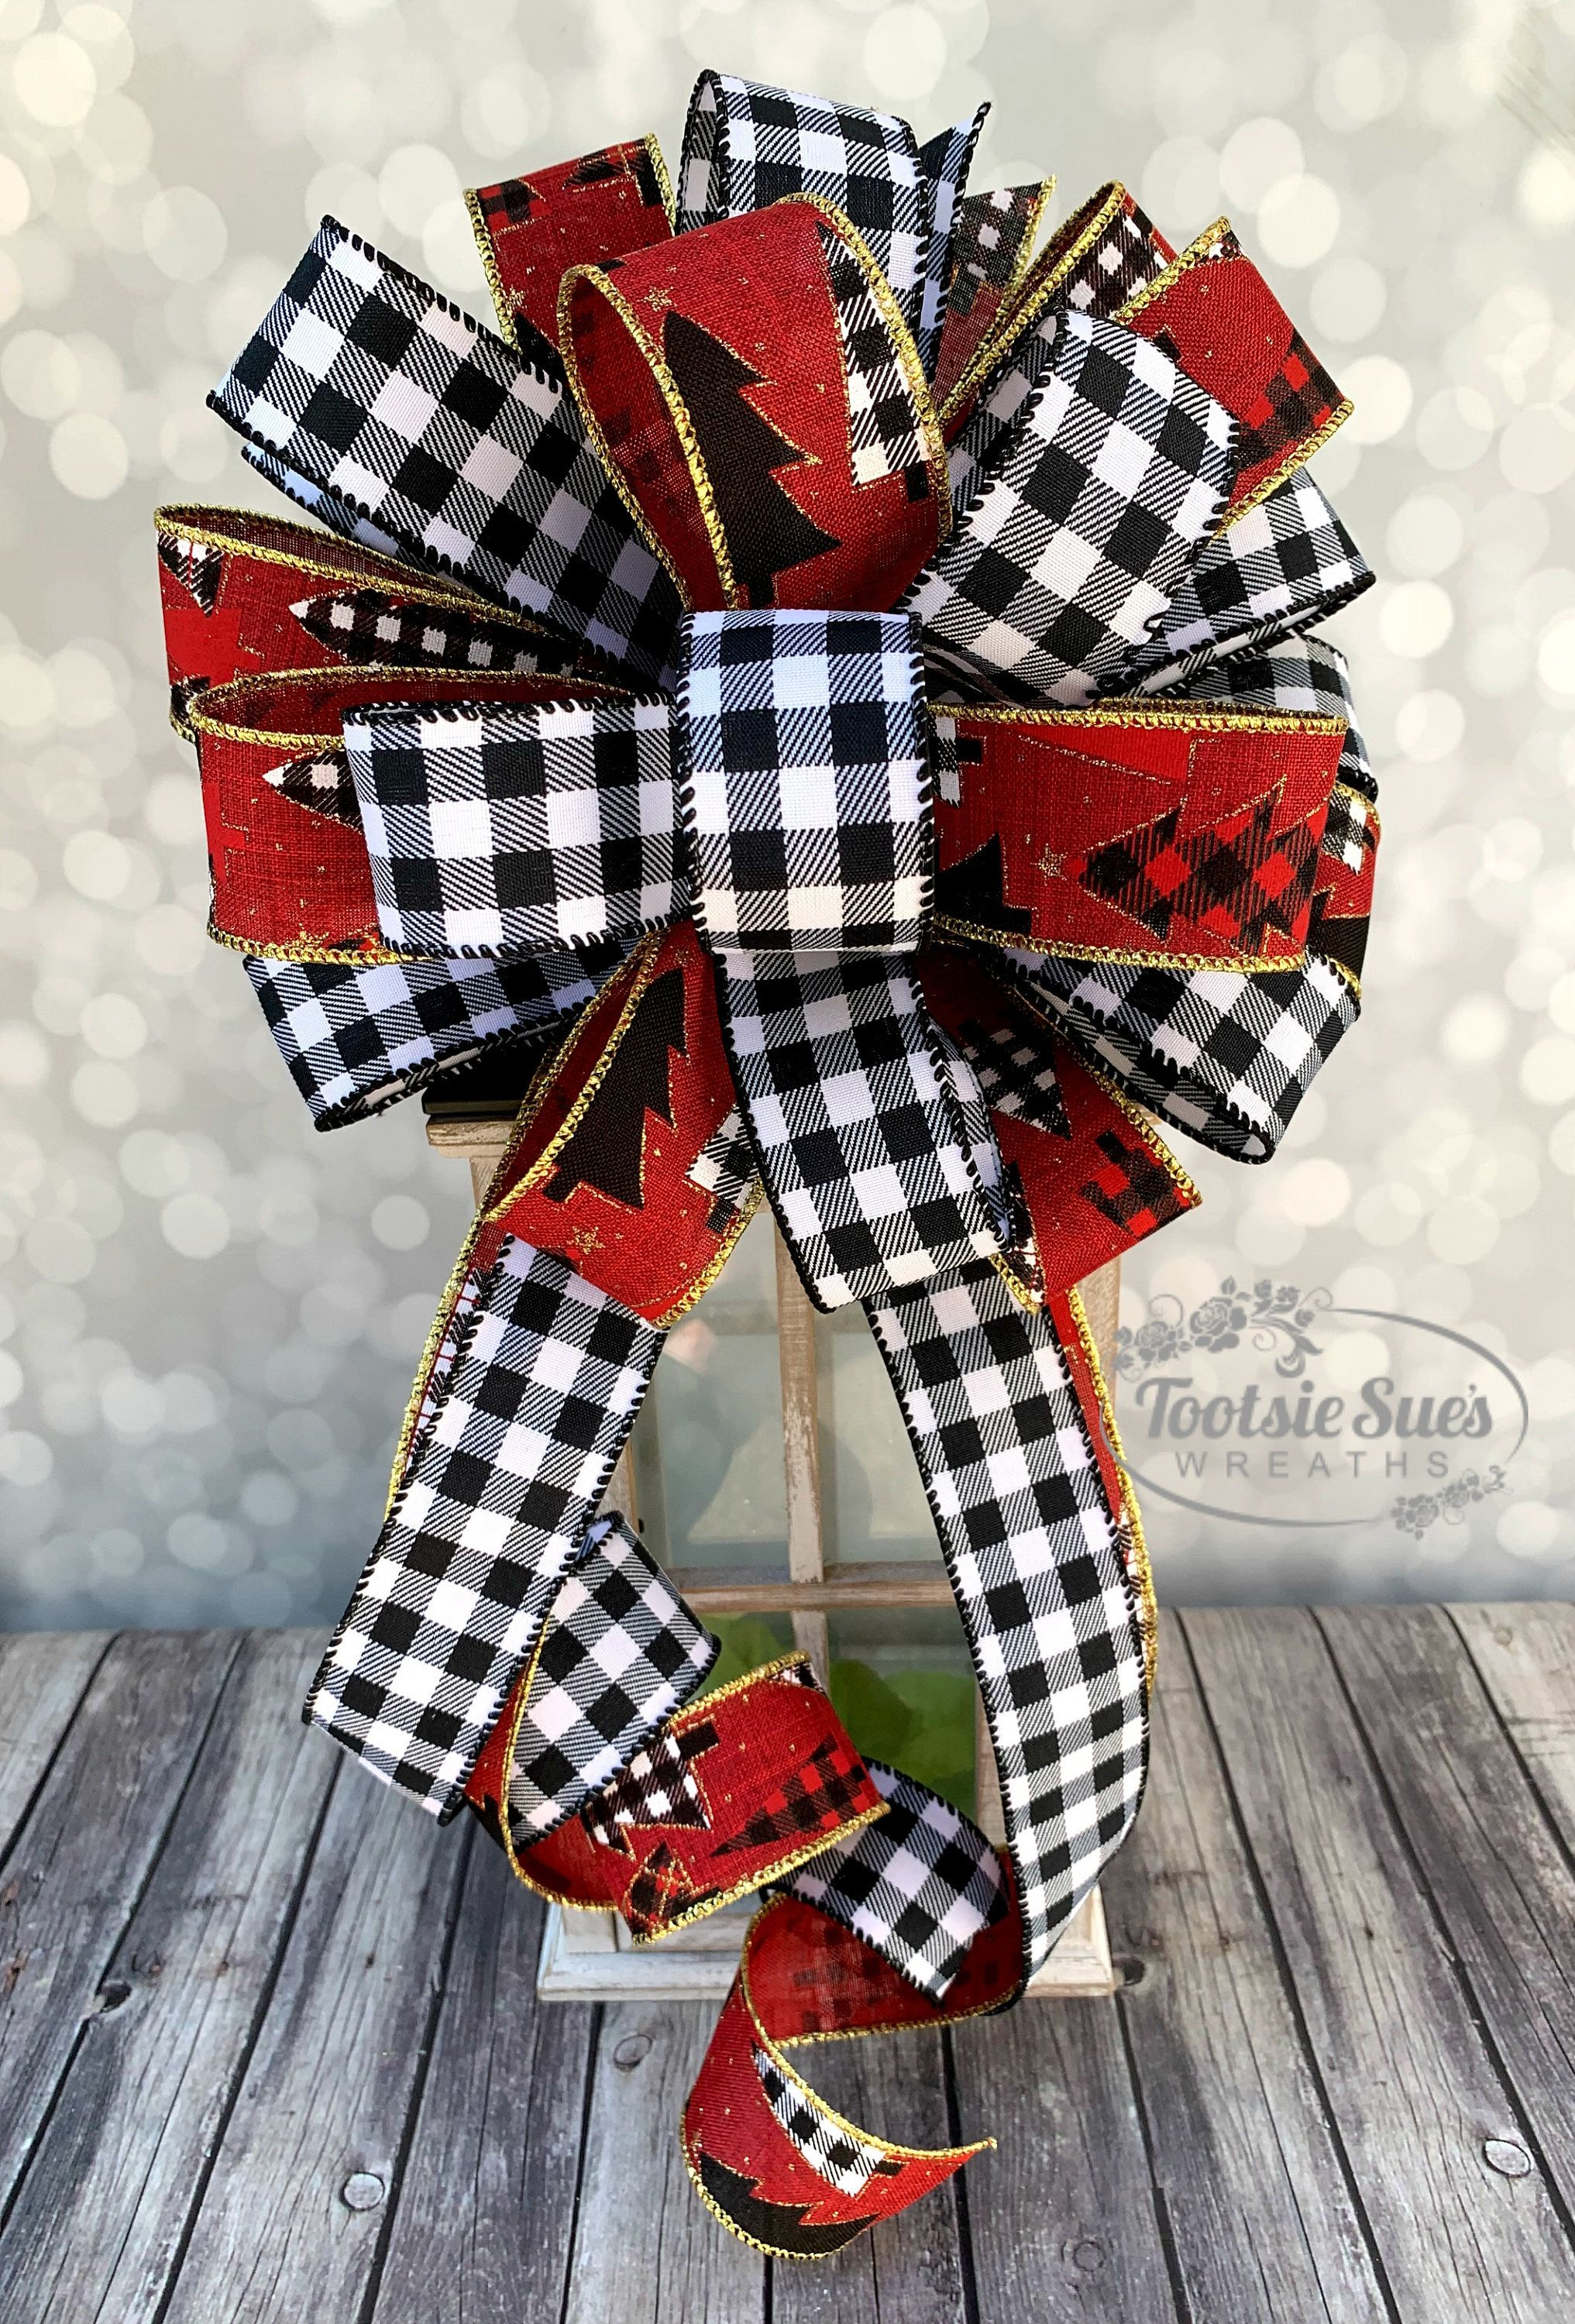 White Birch Buffalo Check Wreath Bow